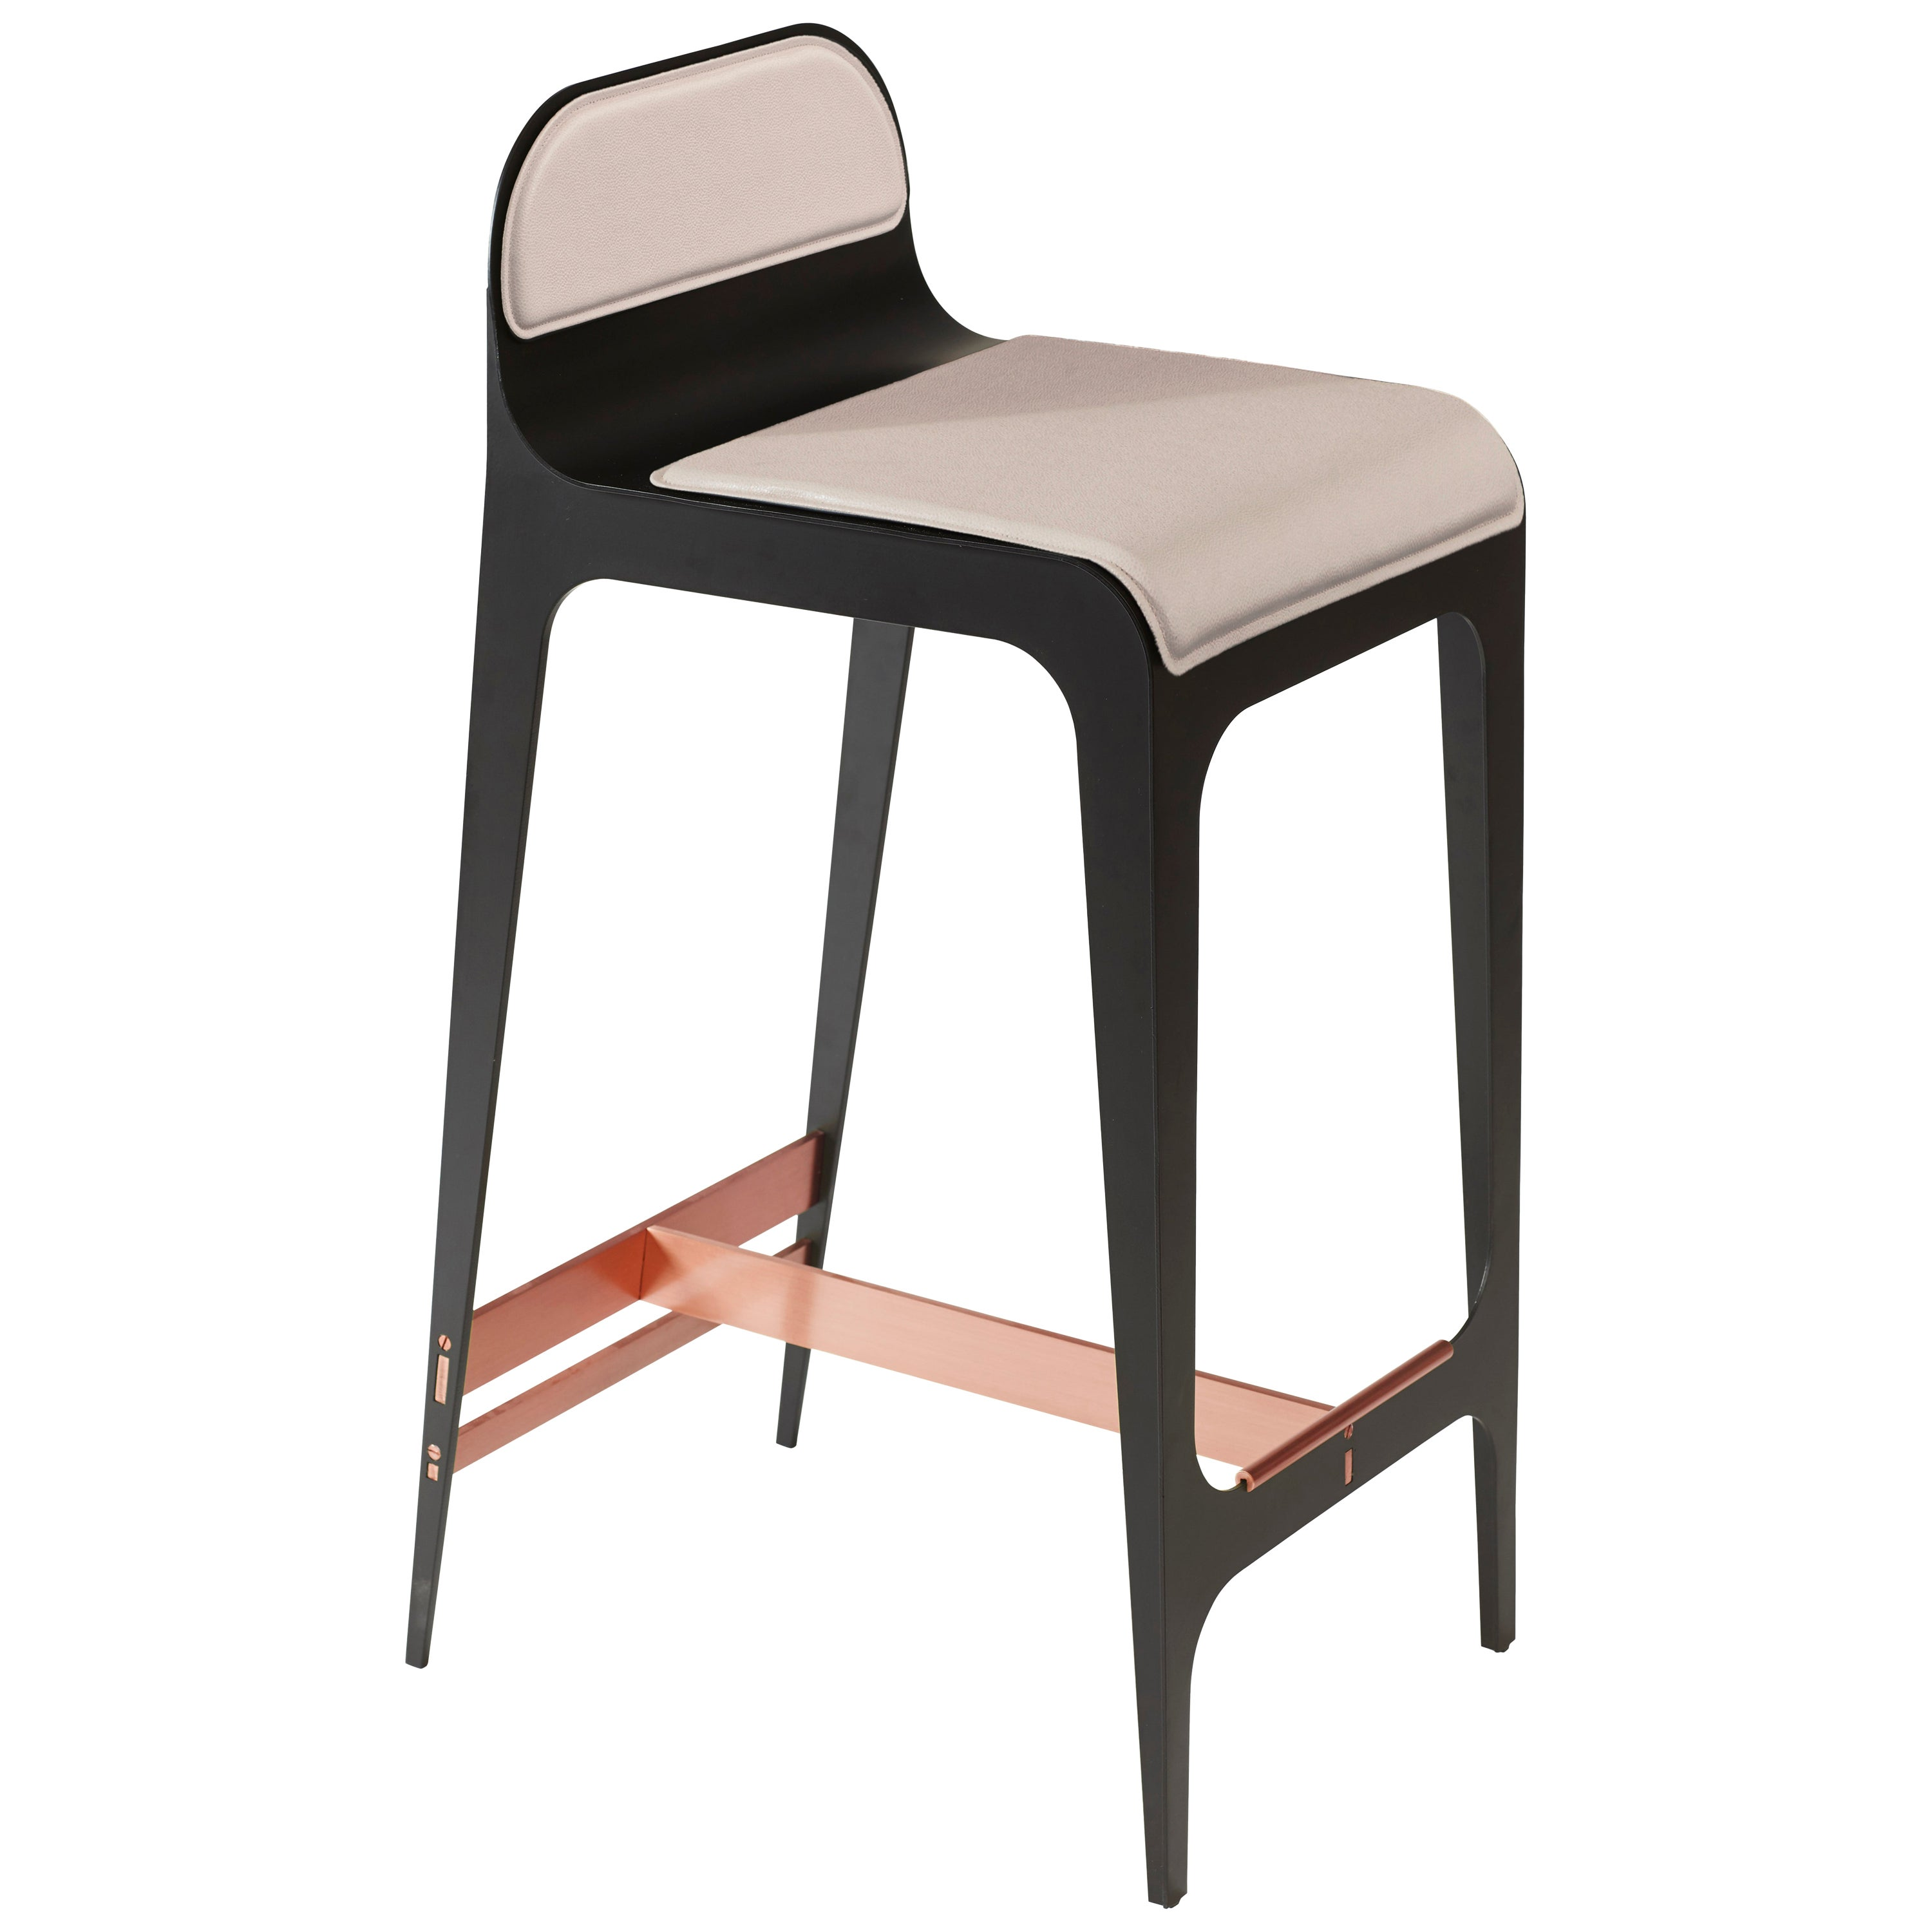 Bardot Barstool with Leather Seat and Satin Copper Hardware by Gabriel Scott